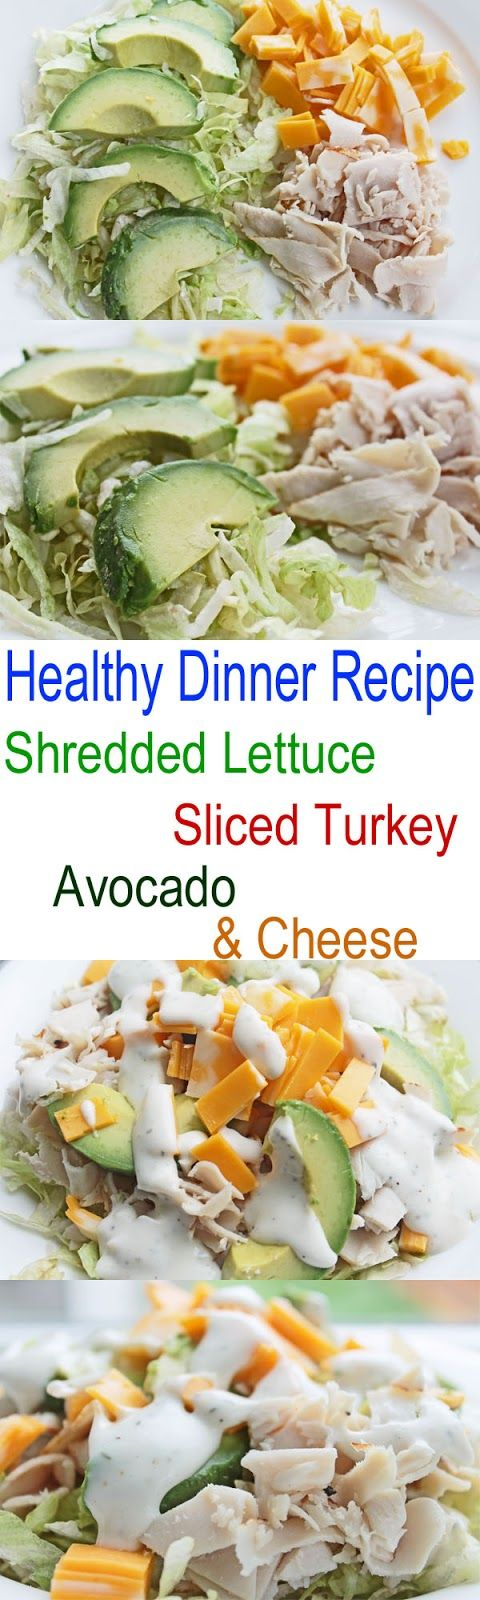 Healthy Dinner Recipe: Shredded Lettuce, Sliced Turkey, Avocado and Cheese Salad | Clean Eating Meal Plan | Easy and Cheap Healthy Meals | Weight Loss Meal Plan